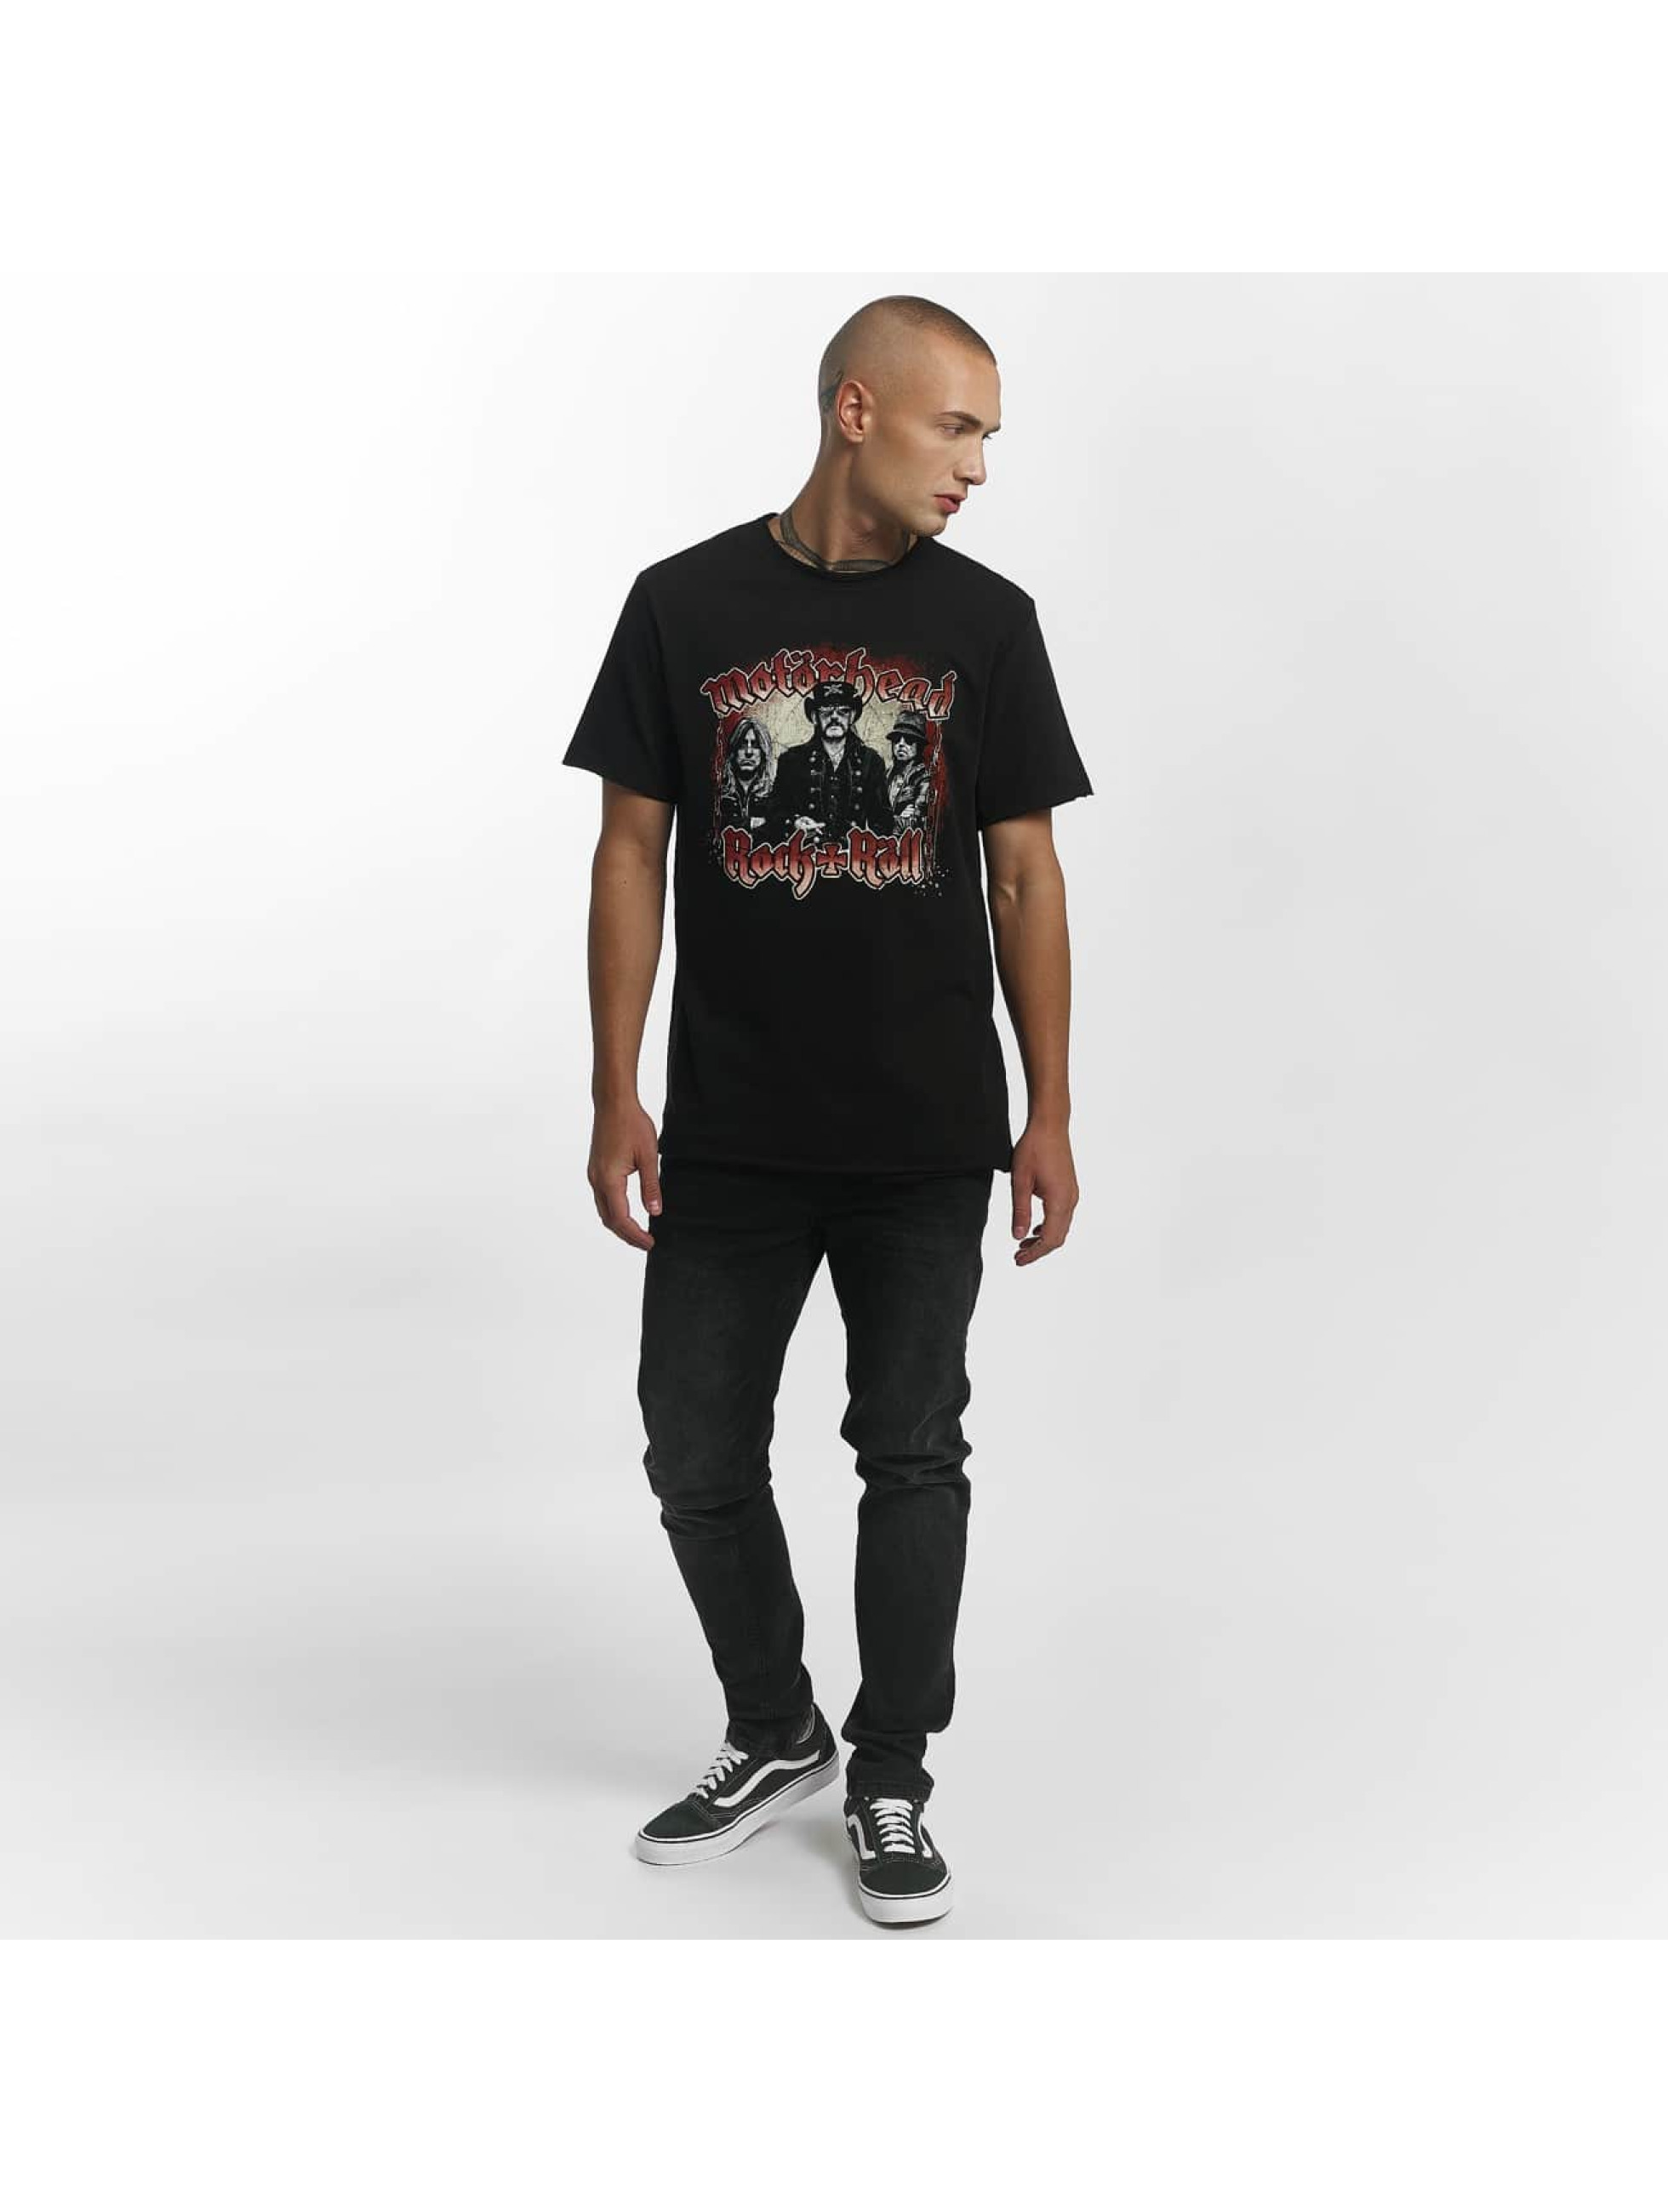 Amplified T-Shirt Motorhead black